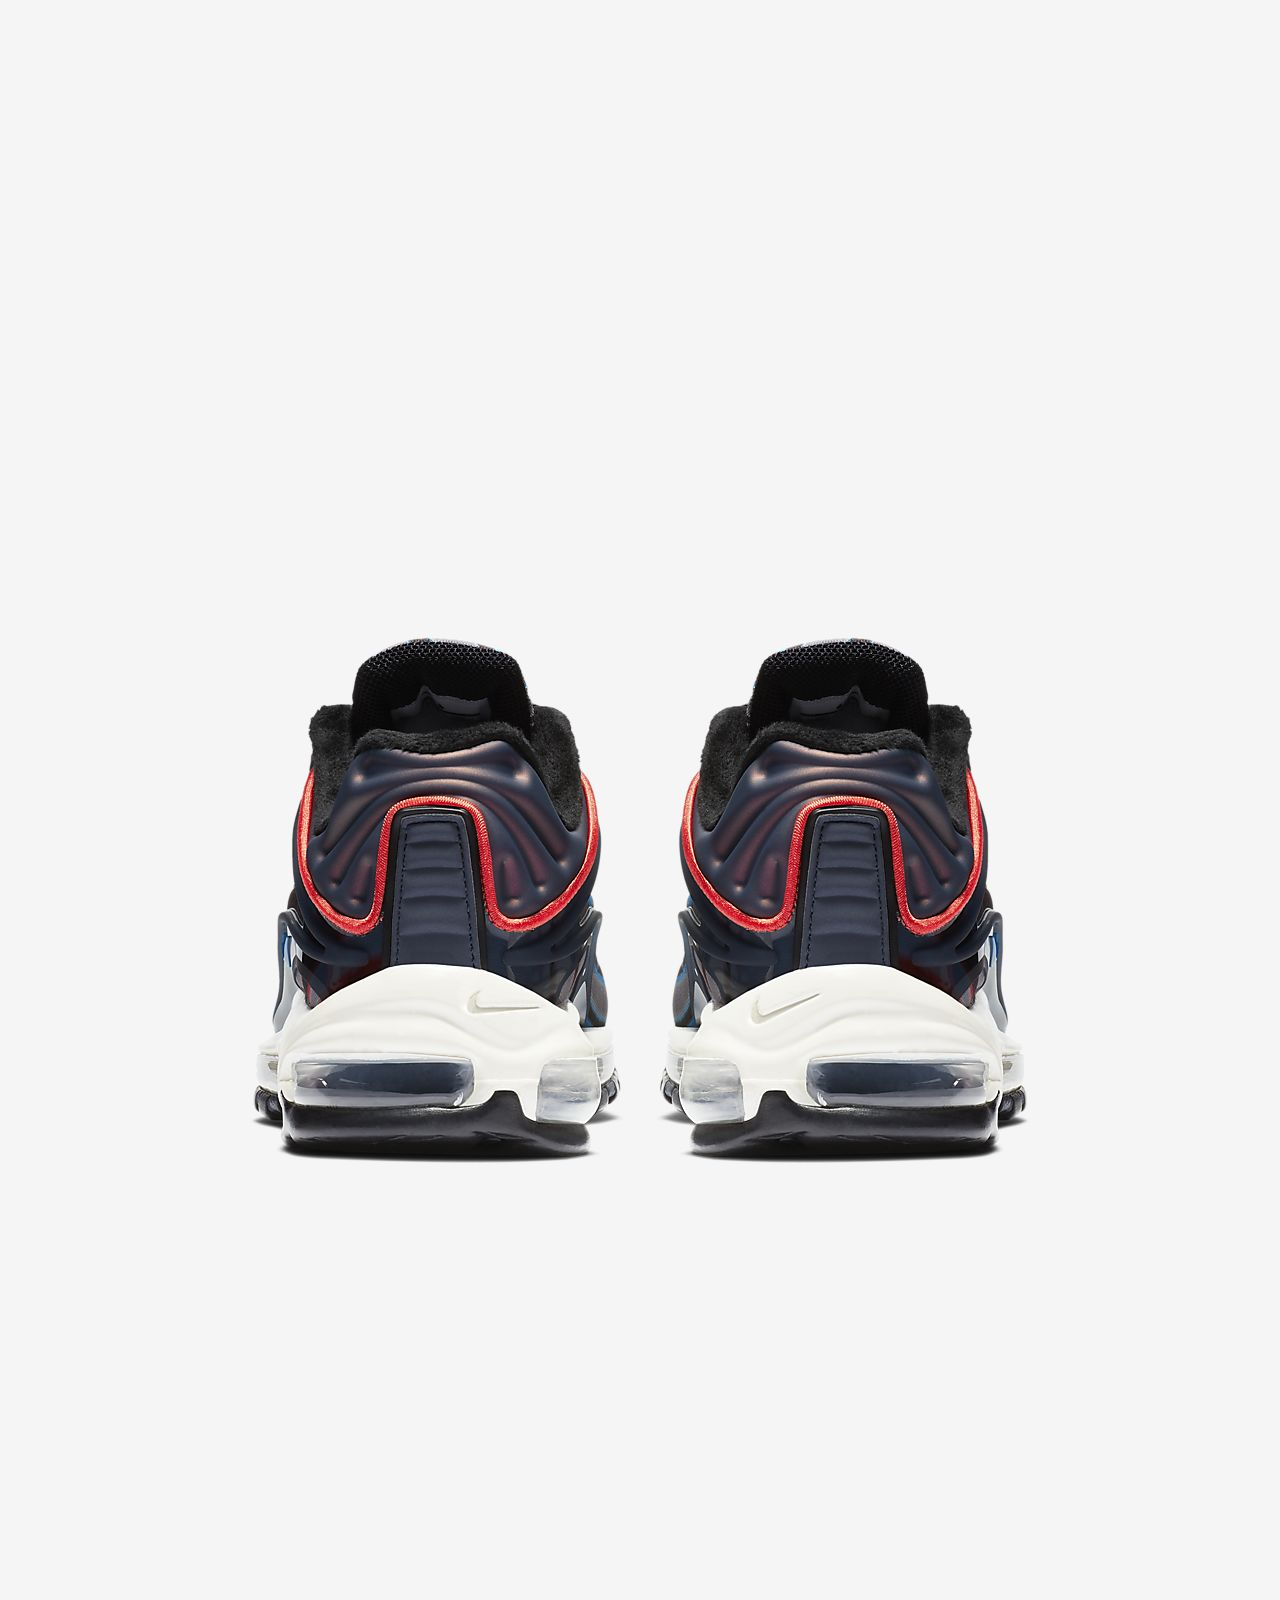 Max Pour HommeElle Chaussure Air Nike Deluxe TKcFlJ1